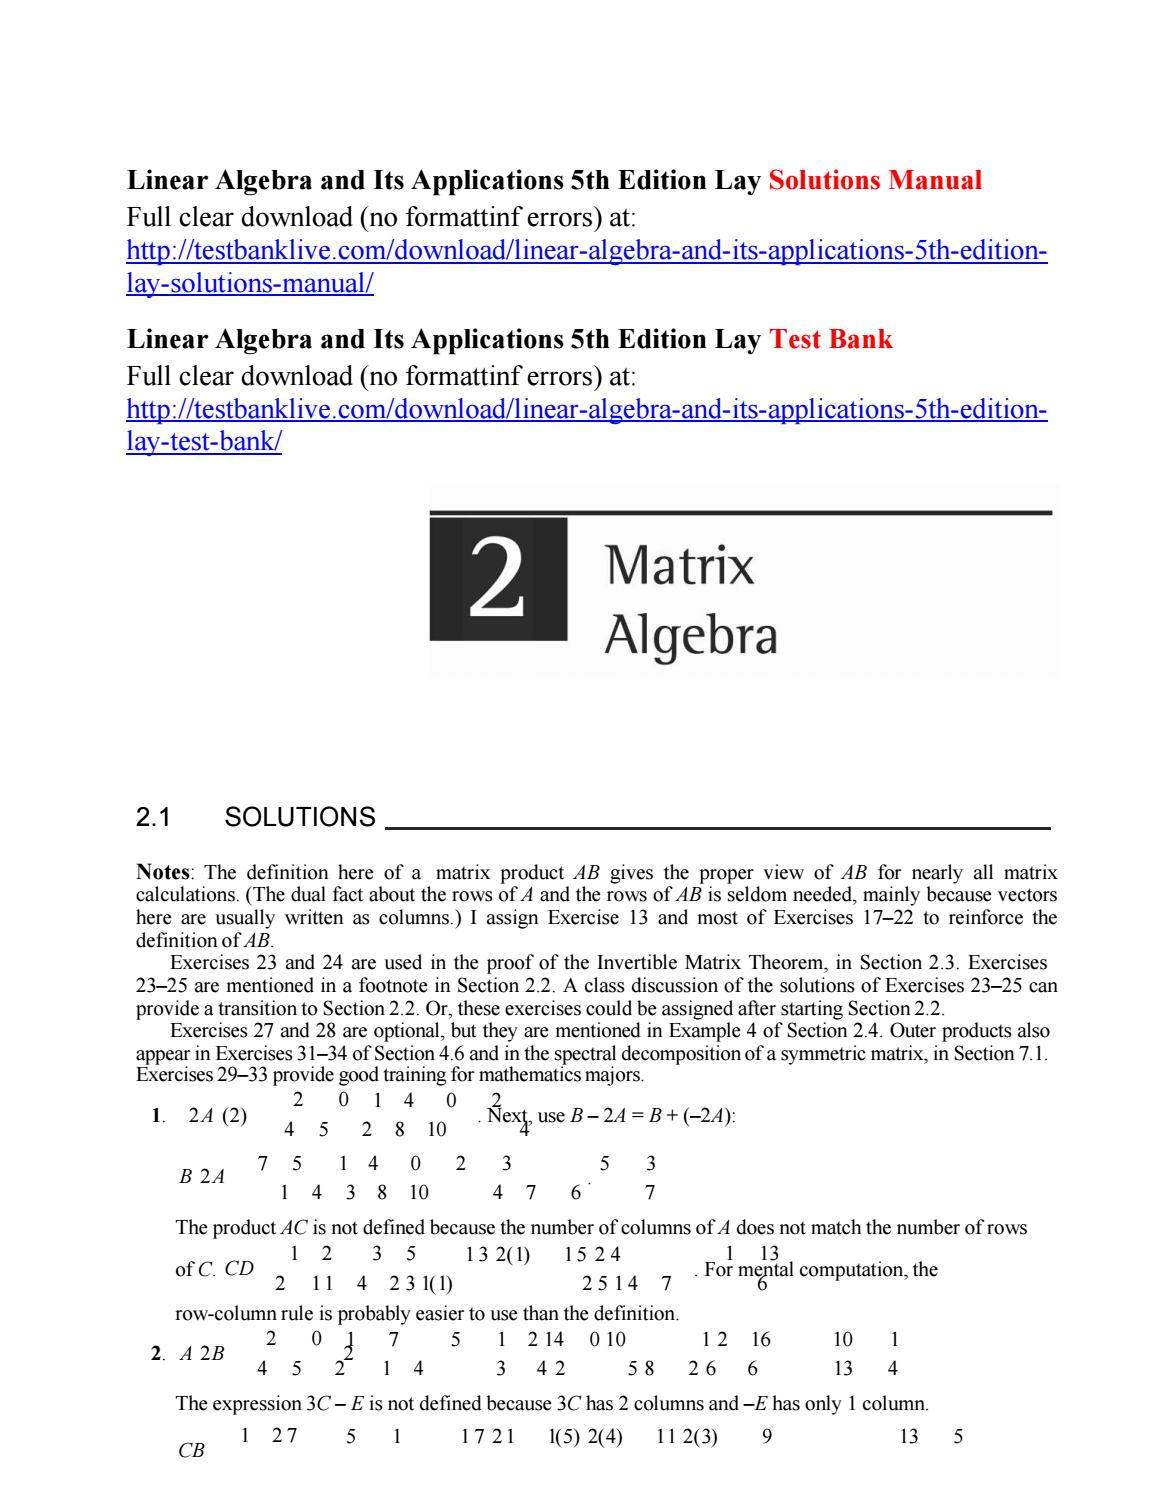 Linear algebra and its applications 5th edition lay solutions manual by  Wilson9833 - issuu